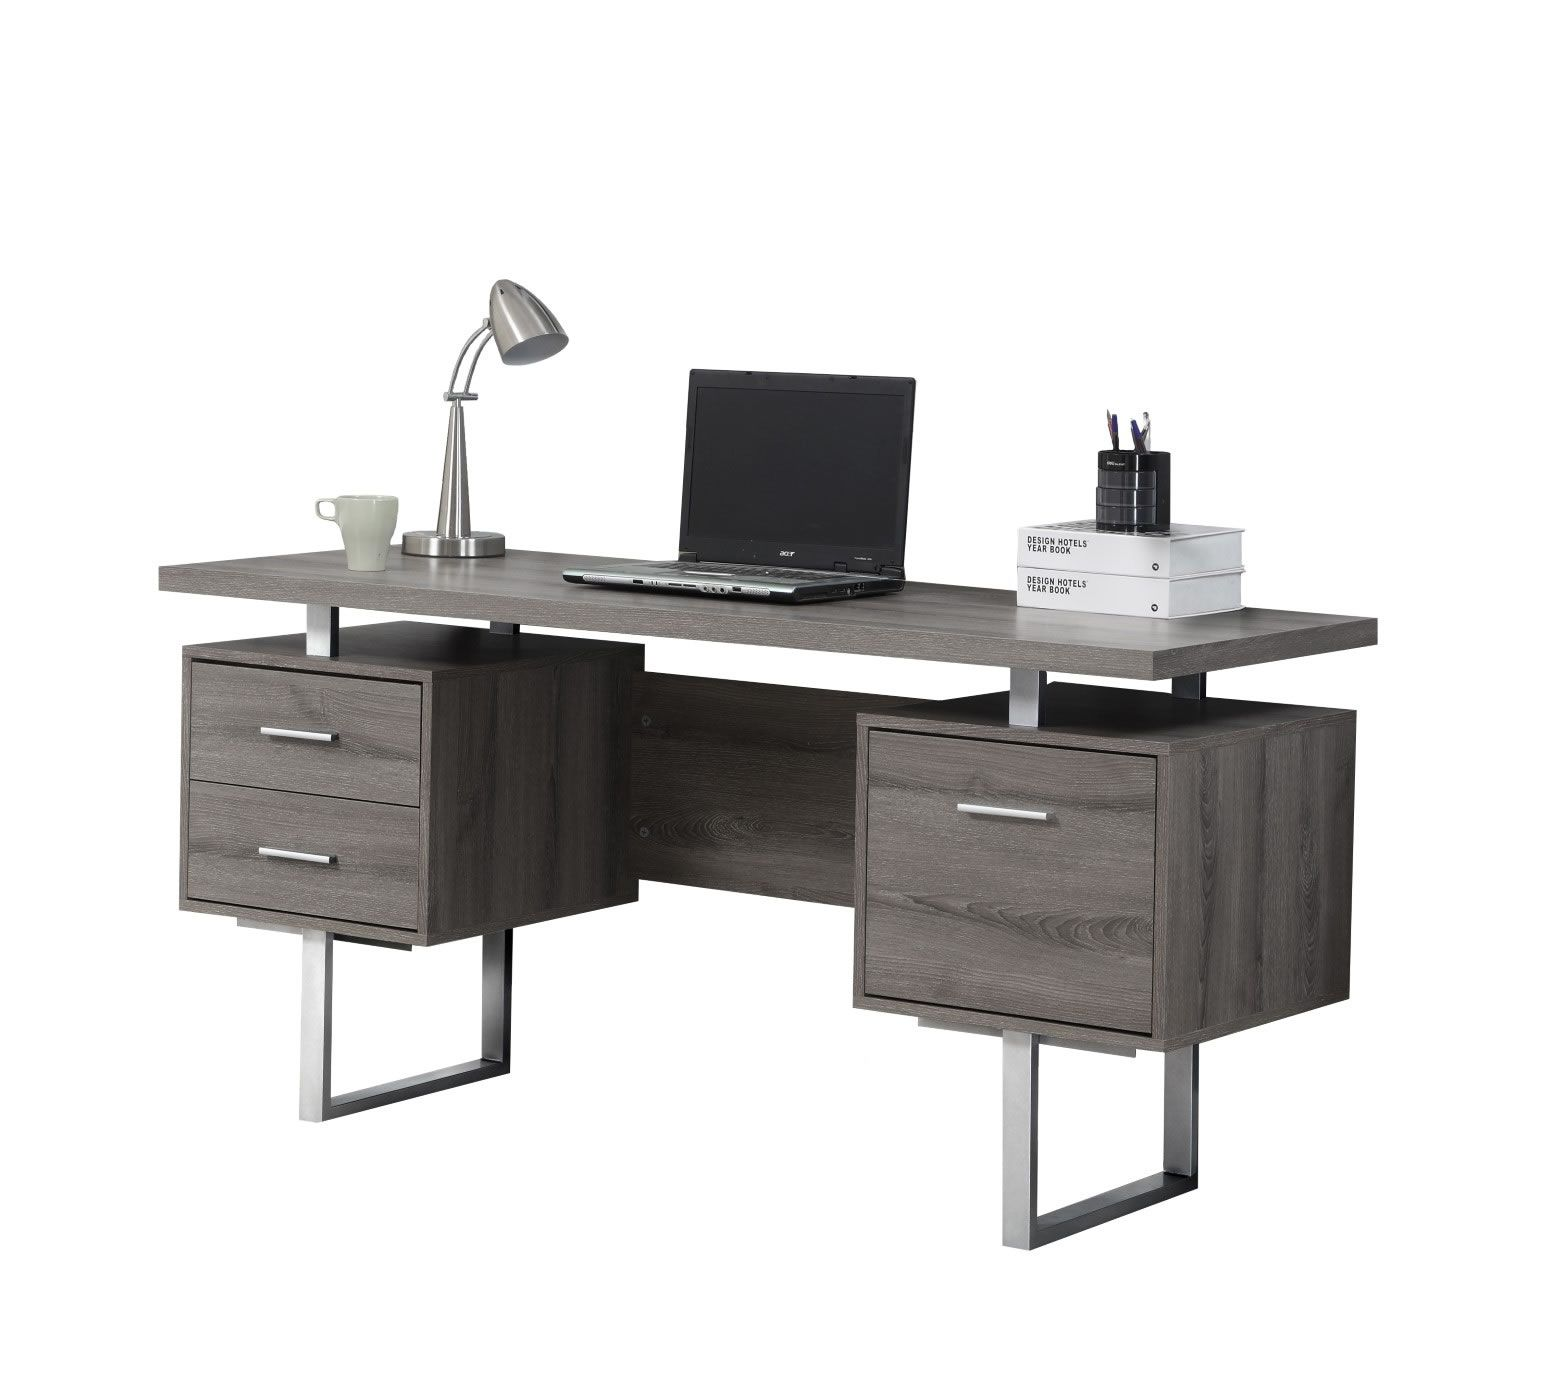 Sleek And Contemporary, This Dark Taupe Reclaimed Look Desk Is